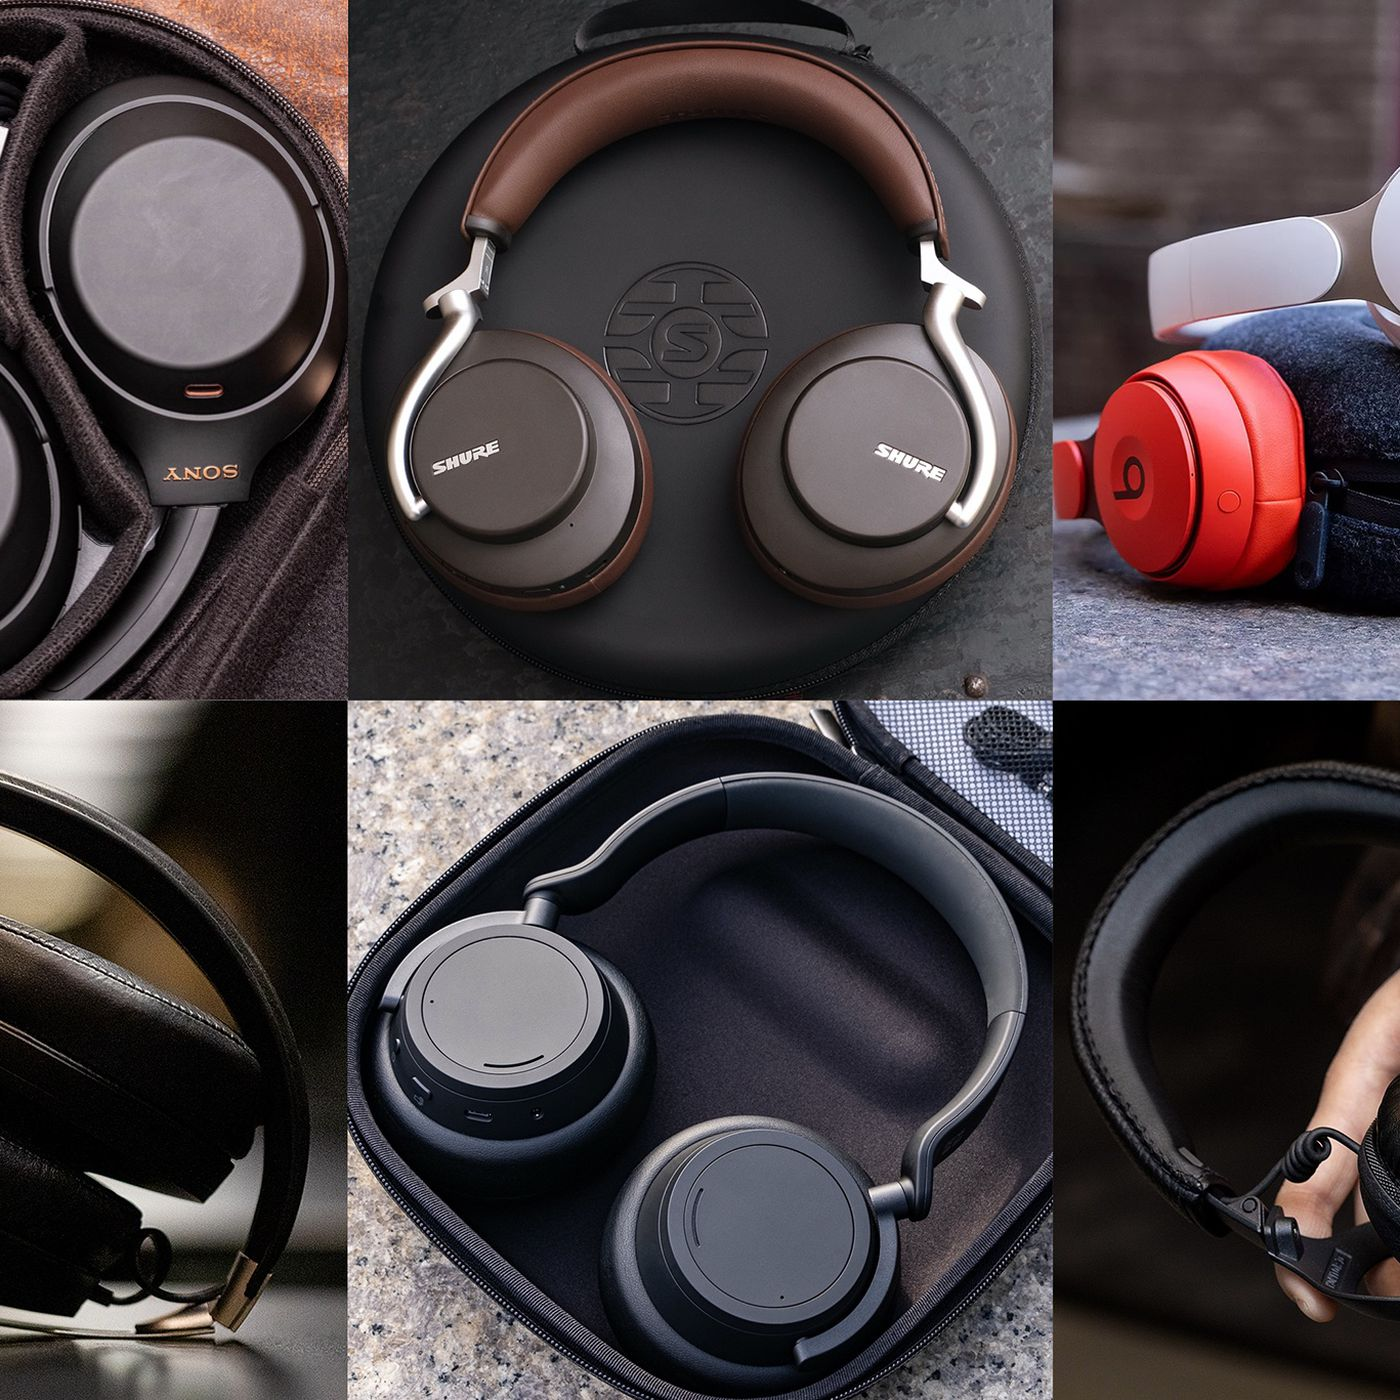 The Best Noise Canceling Headphones To Buy In 2020 The Verge